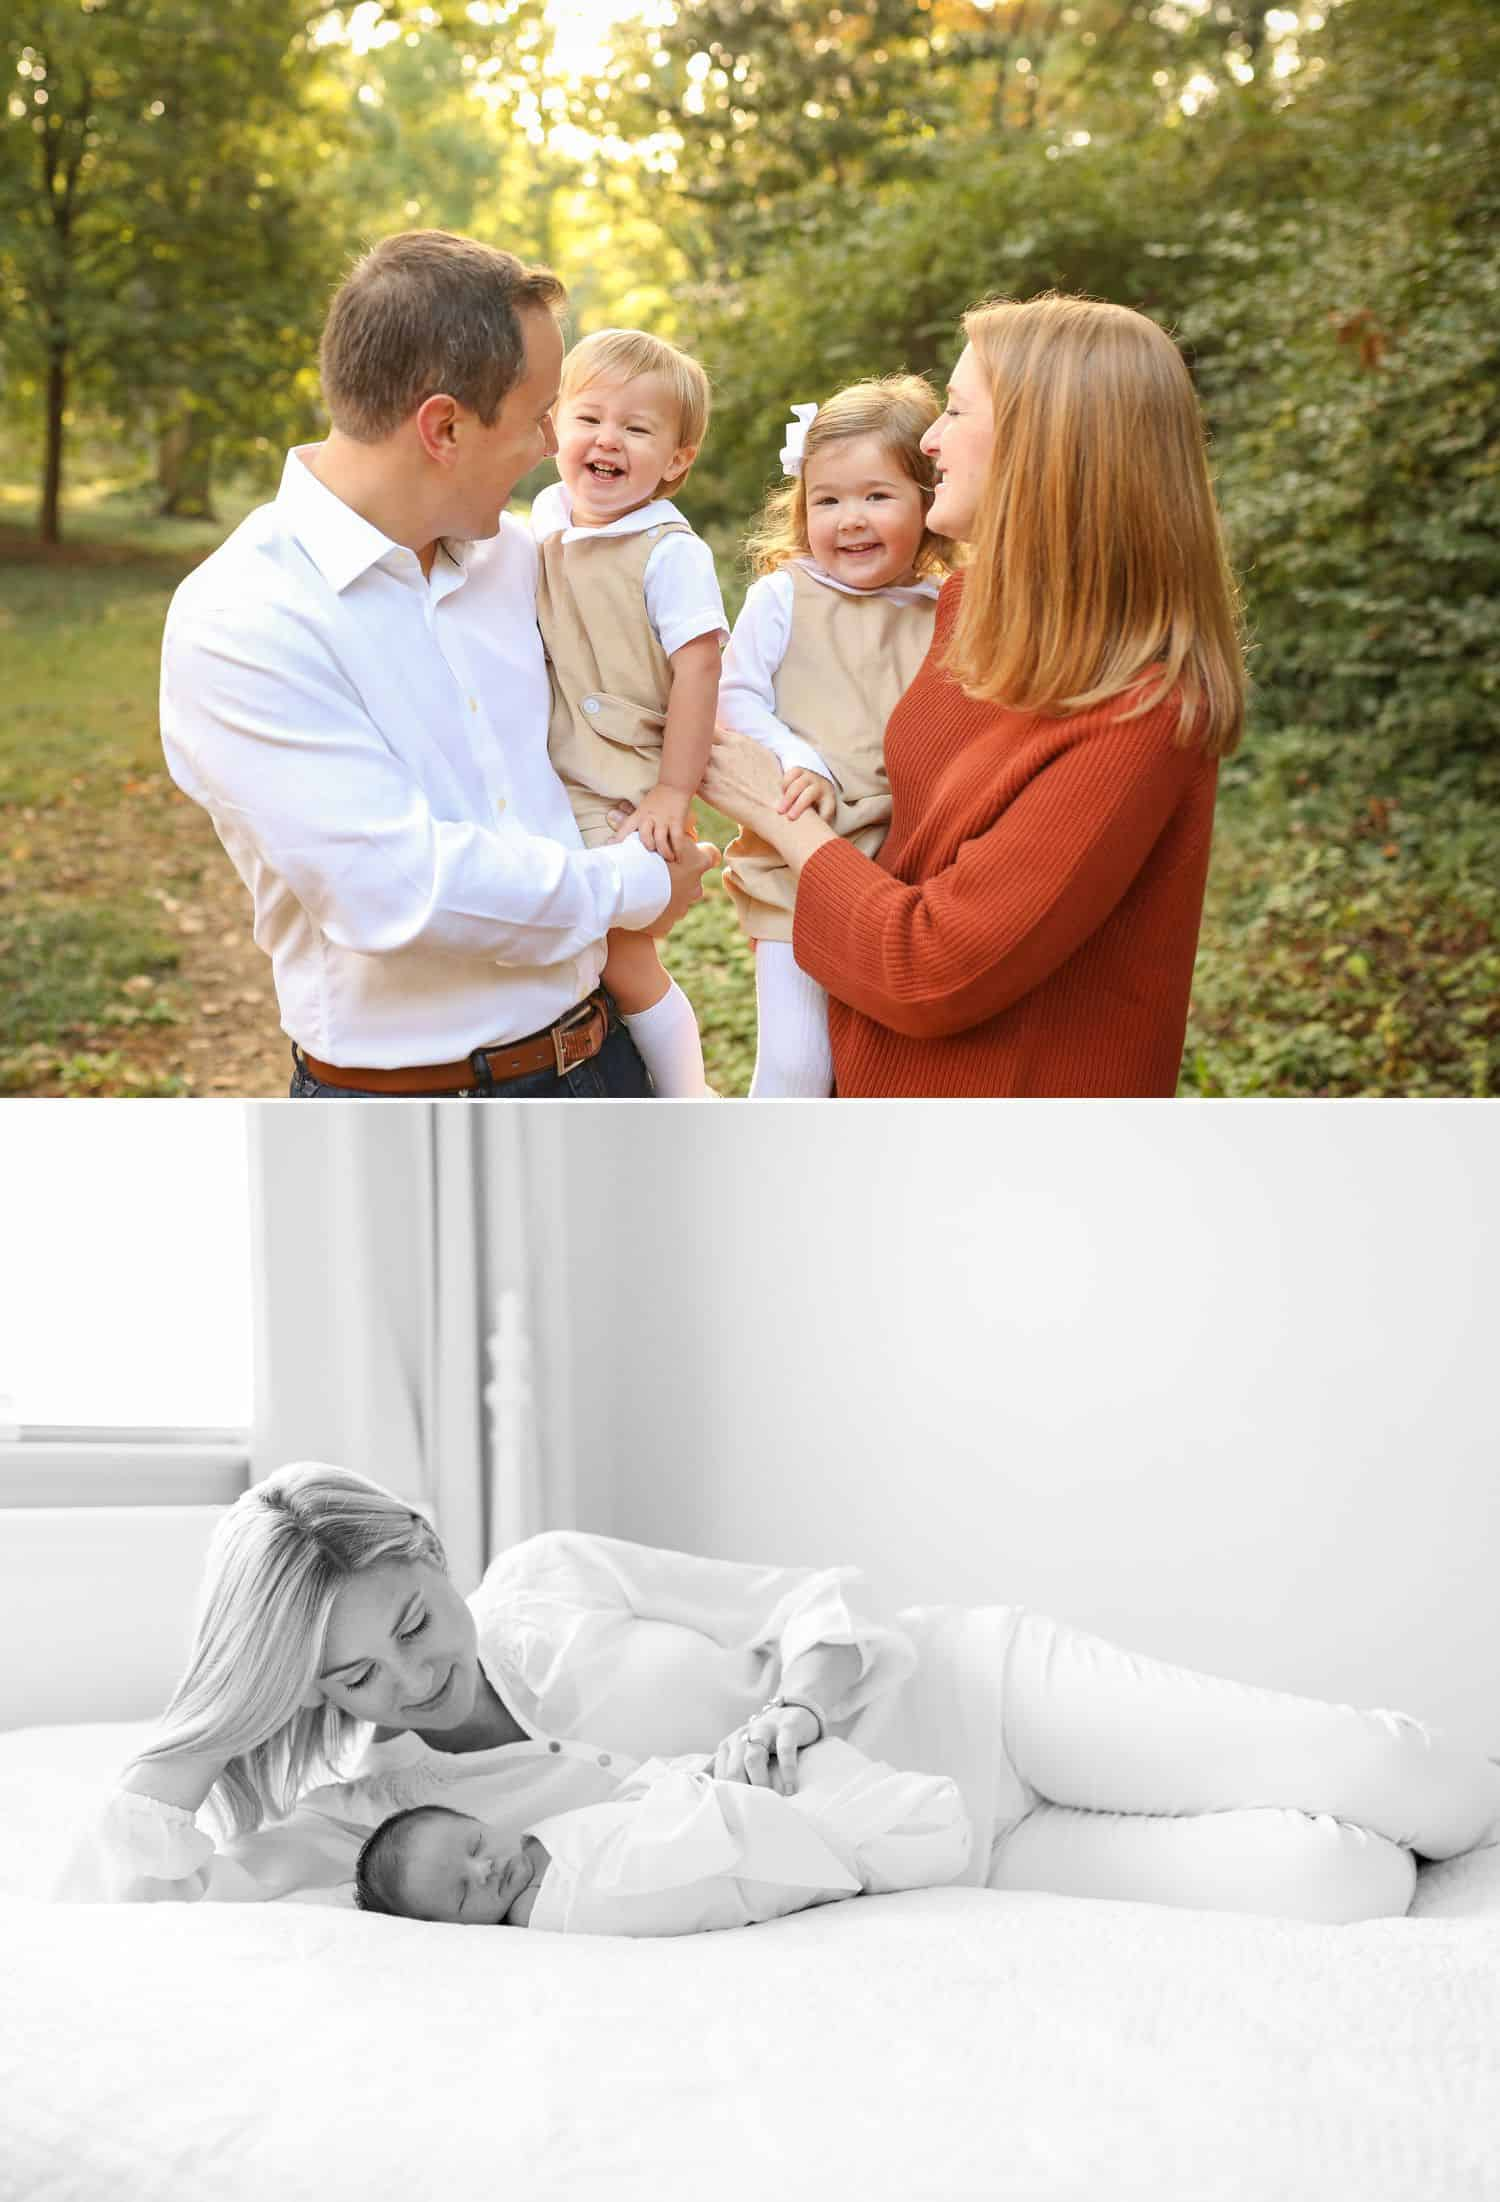 How To Get More Photography Clients? Start Saying No! - Relaxed family photographs by Jenny Perry.